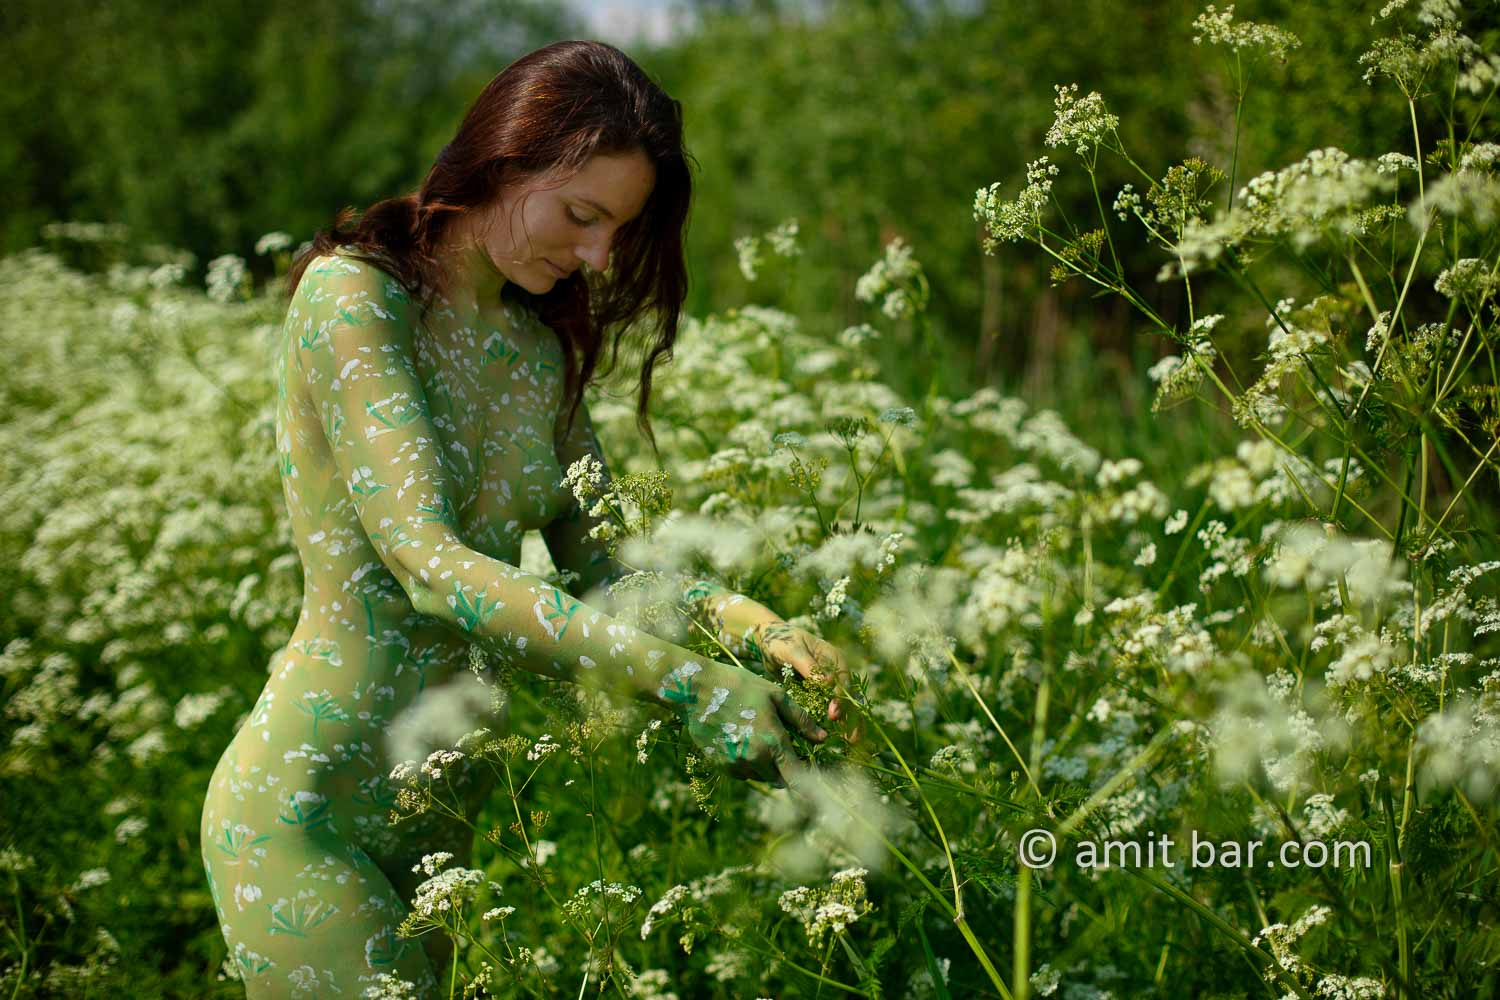 Cow parsley I: The wild plant Cow parsley inspired me to crate a body-painting on a sunny day besides my hometown.